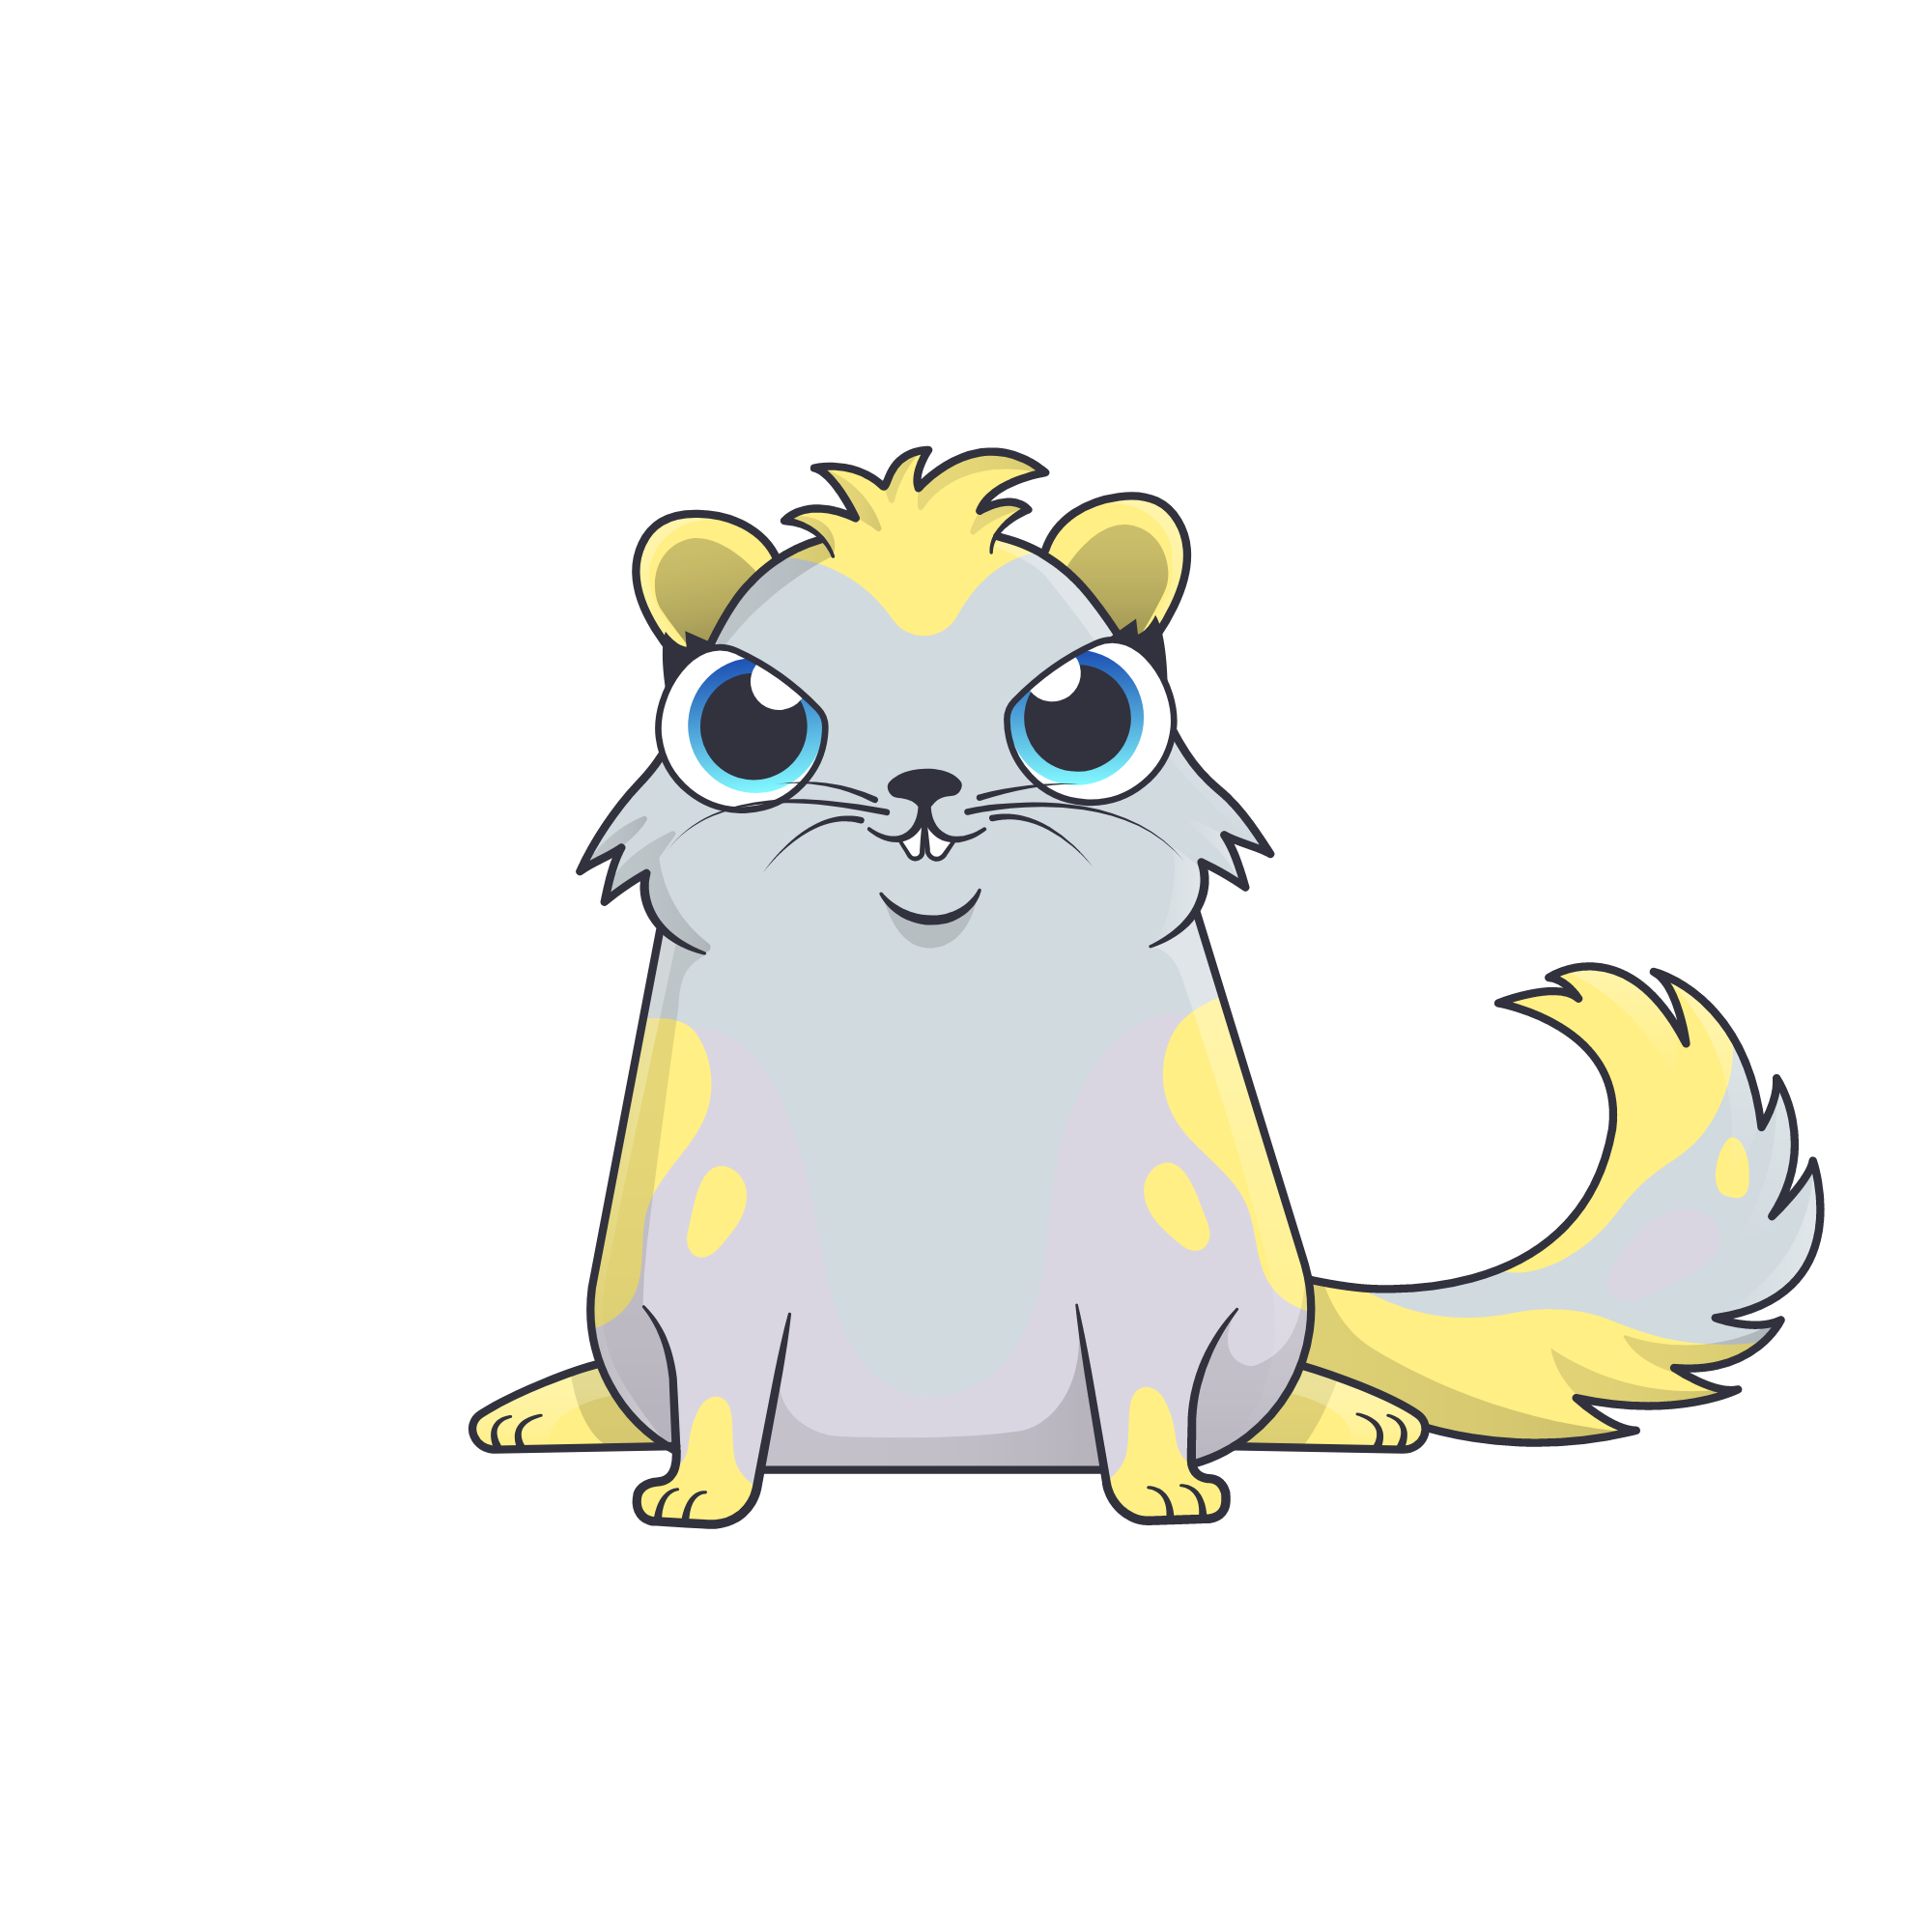 cryptokitty #1676871